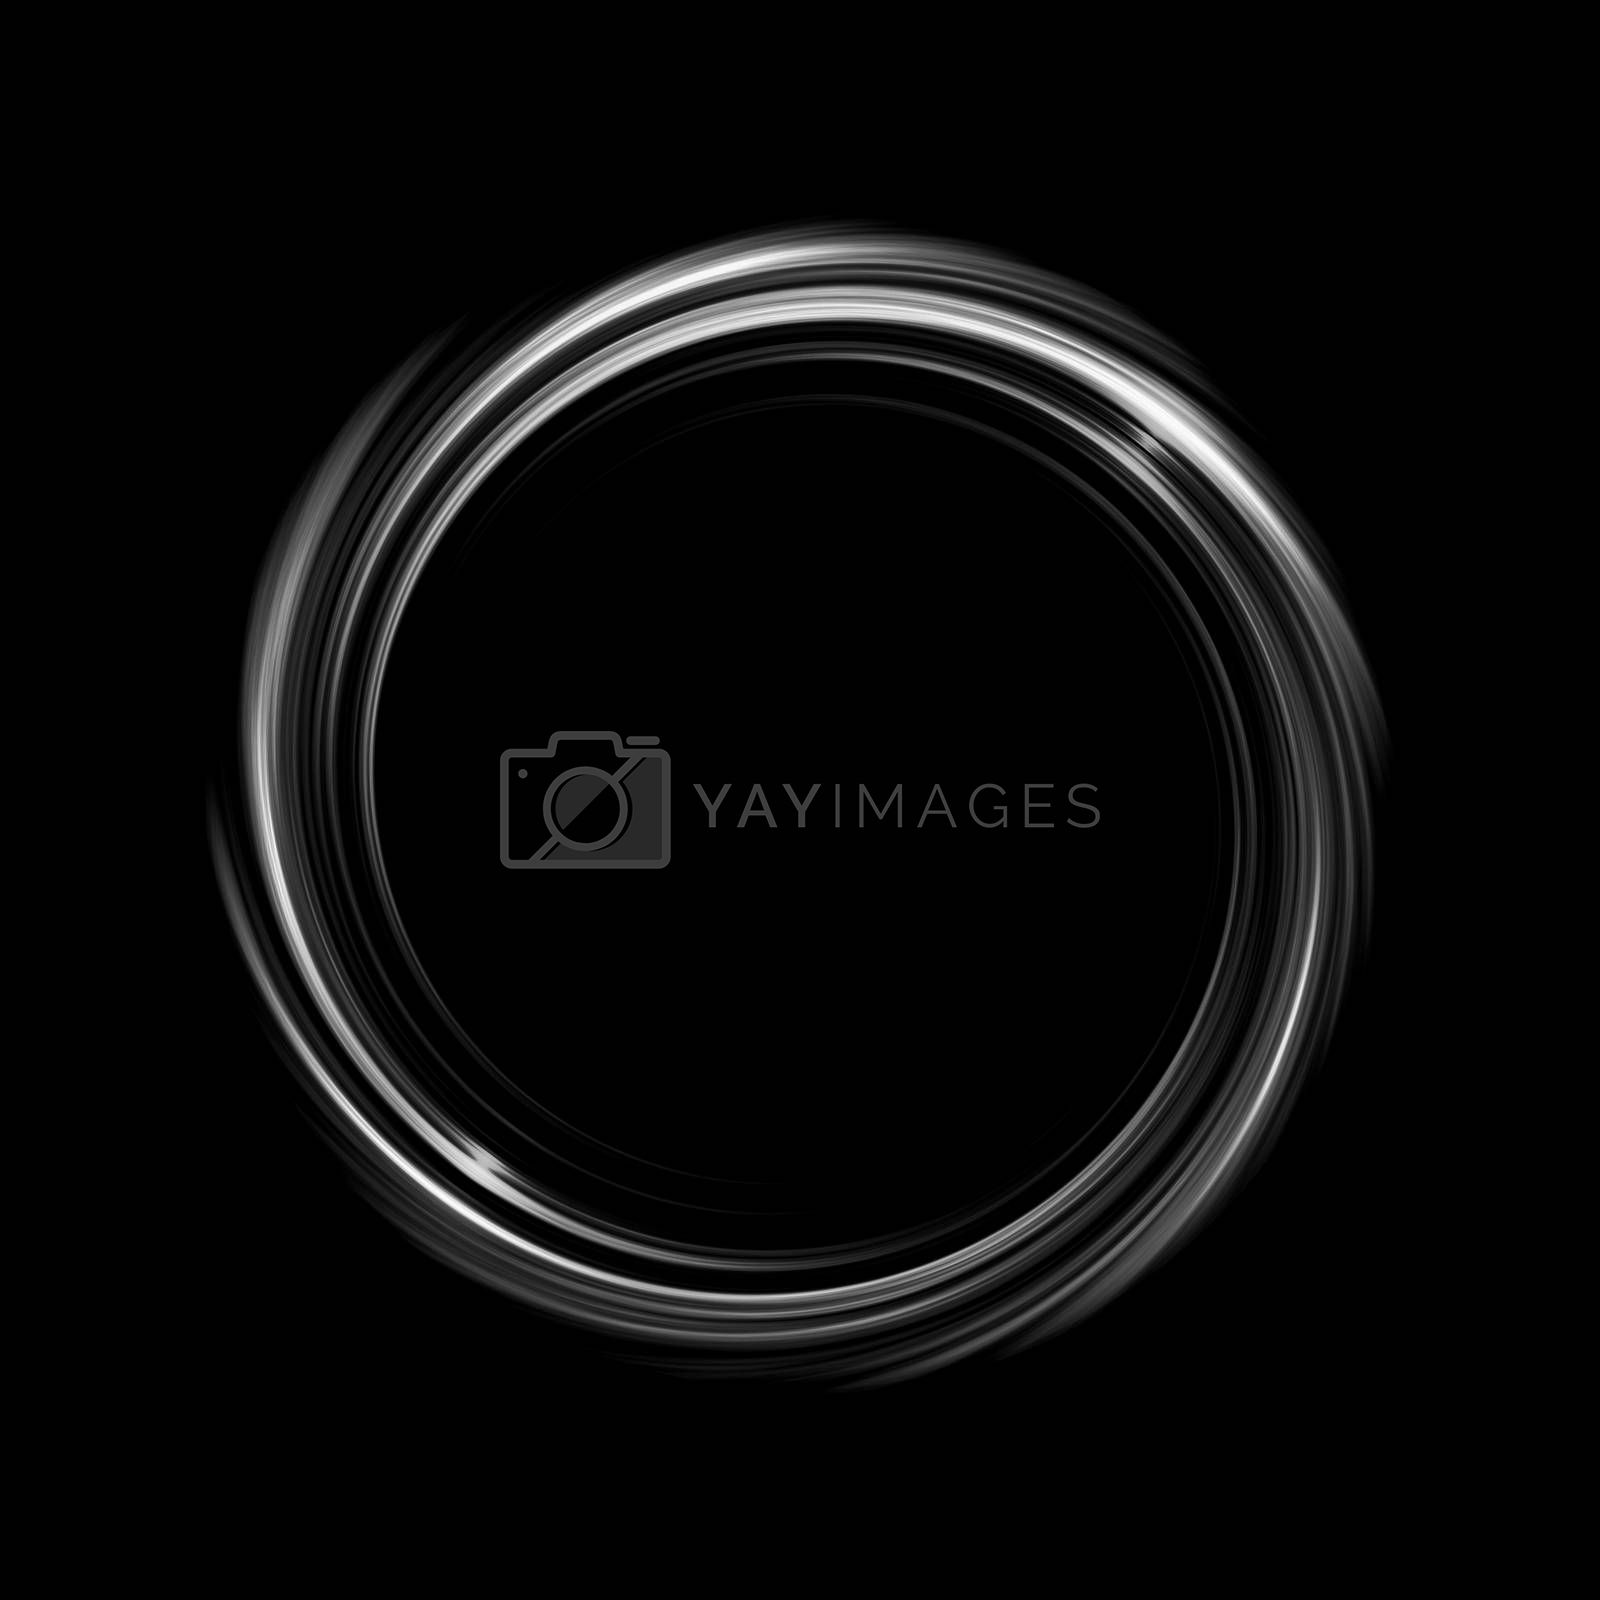 Royalty free image of Glowing white spiral with light circle on black backdrop, abstract background by mouu007